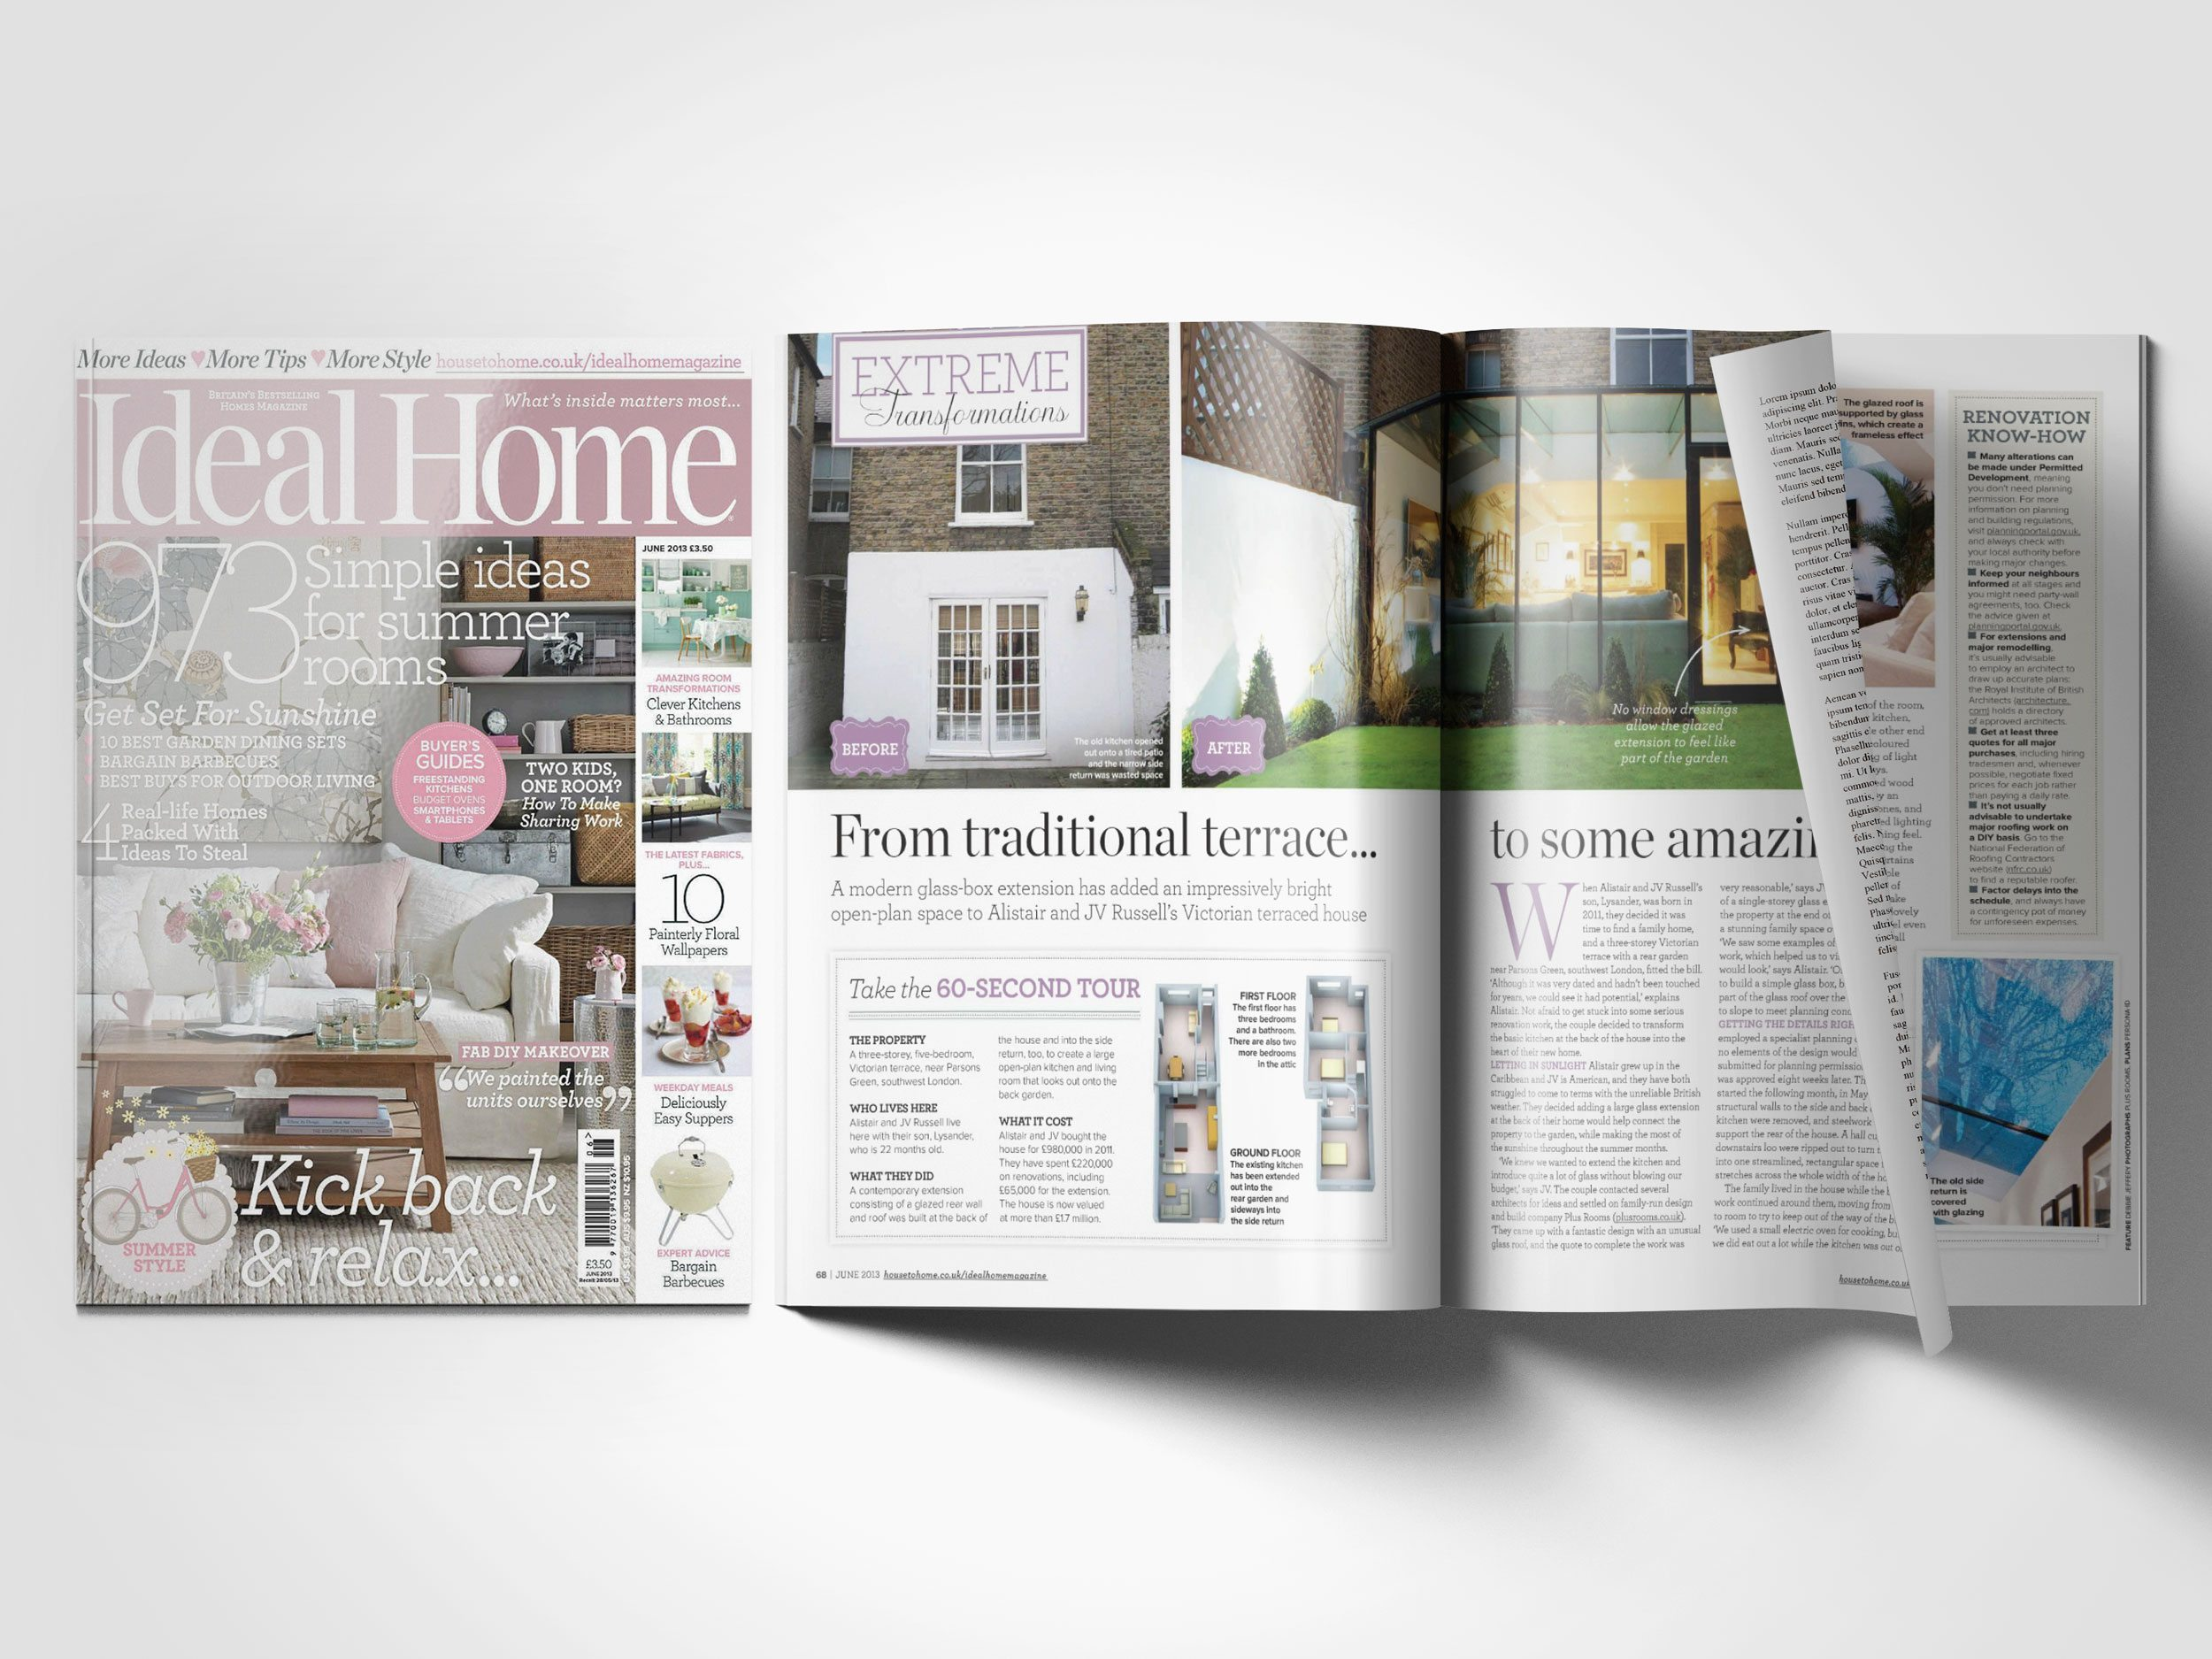 Ideal Homes June 2013